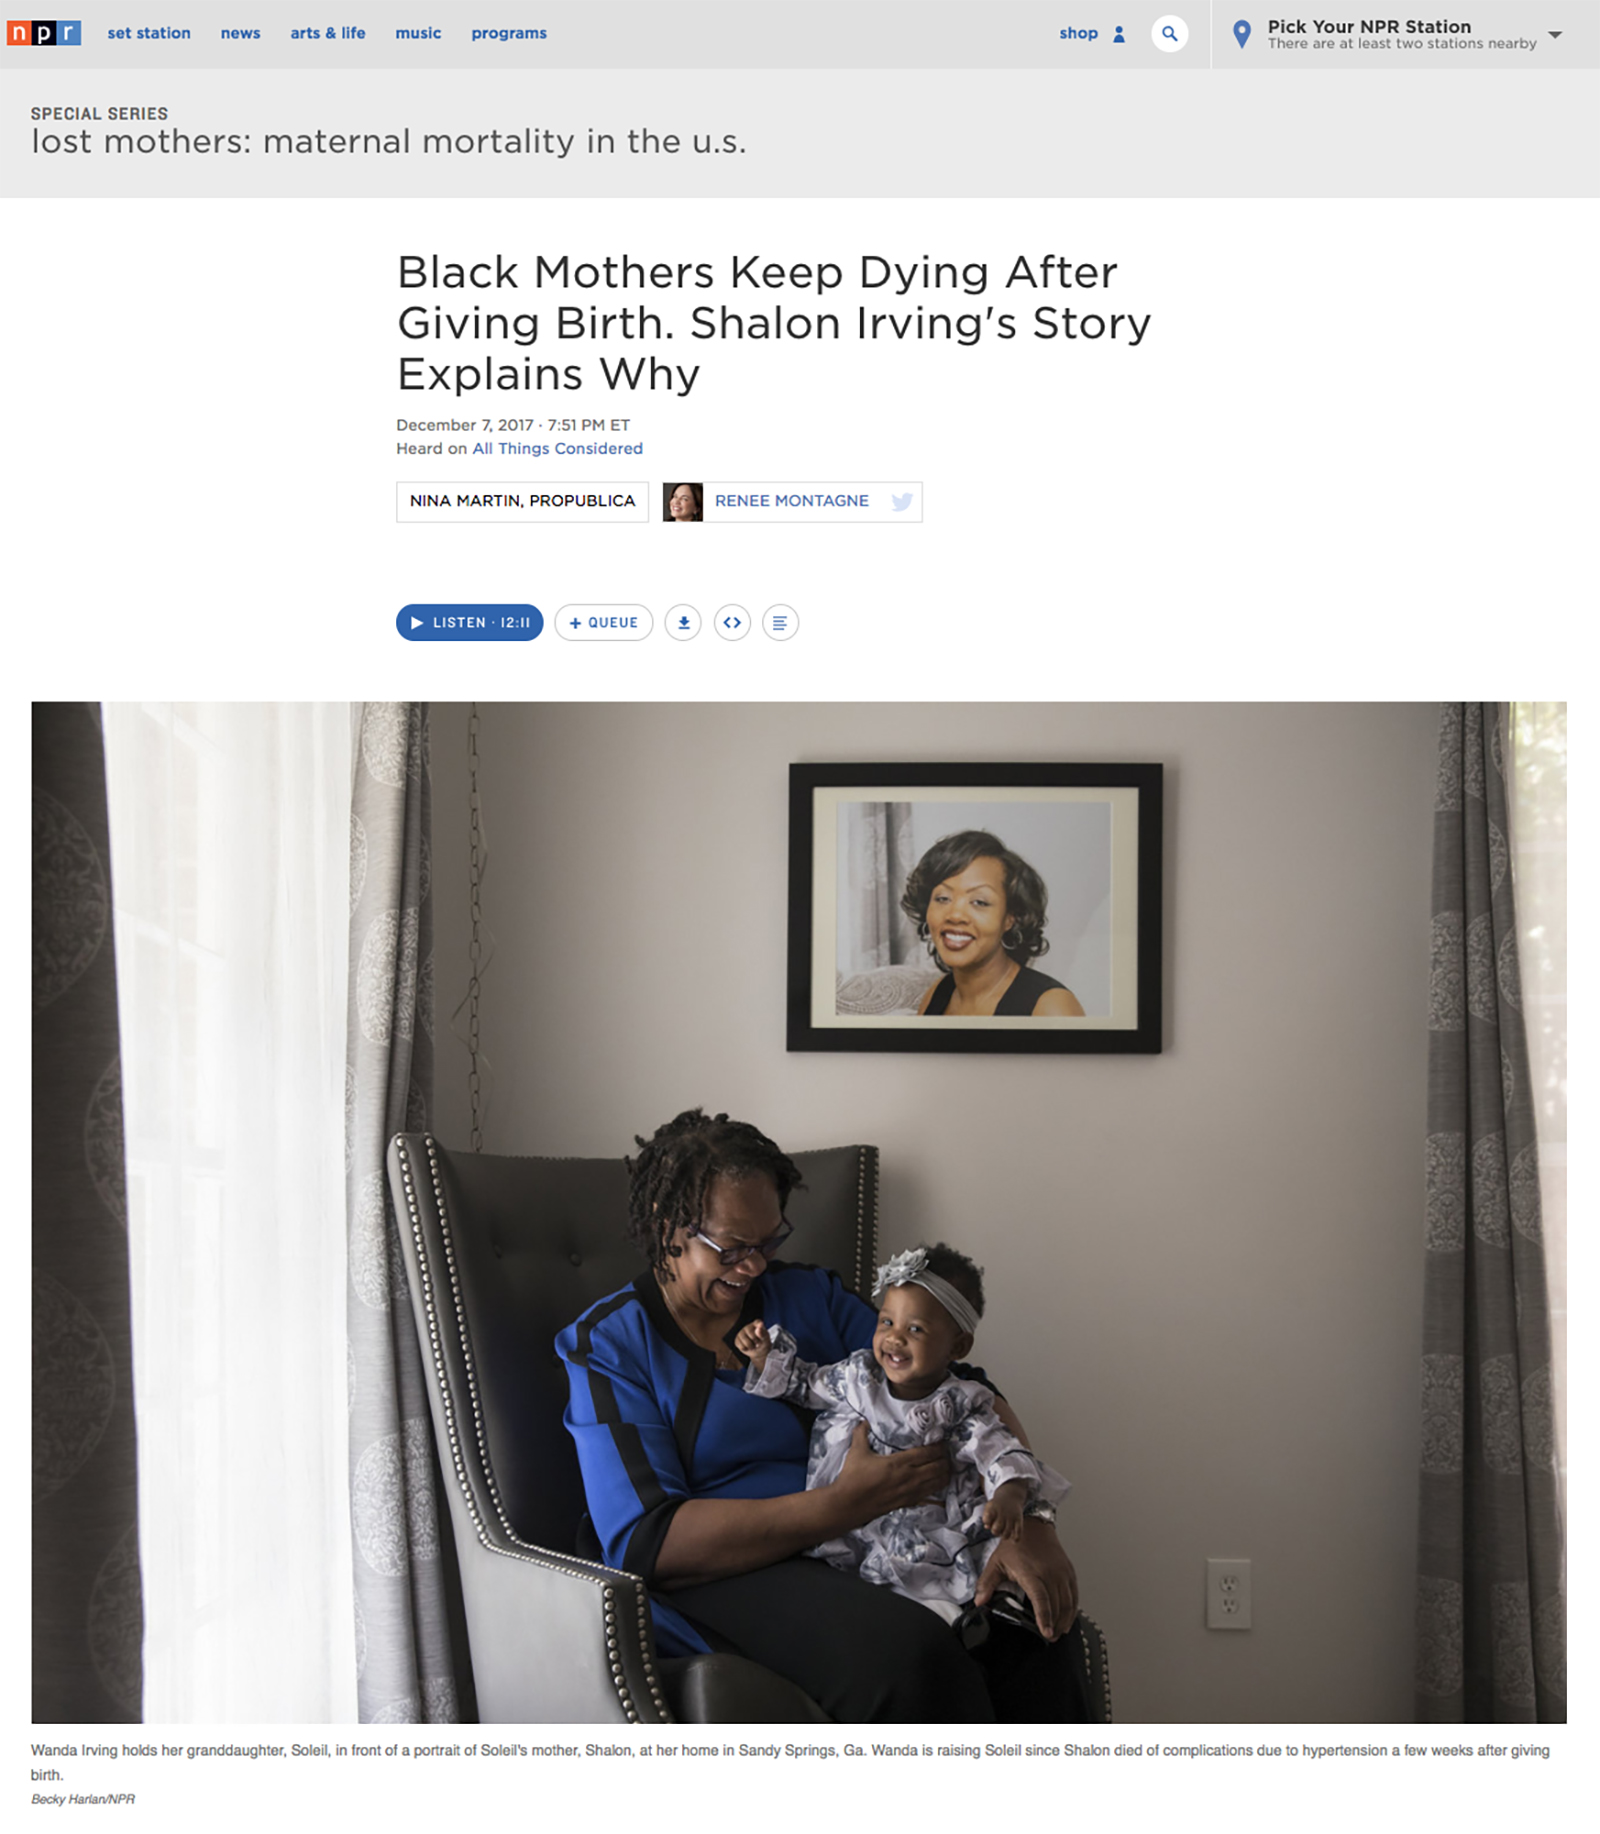 For the full series on npr.org  click here.  The ProPublica/NPR collaboration was  a finalist for the 2018 Pulitzer Prize for Explanatory Reporting.